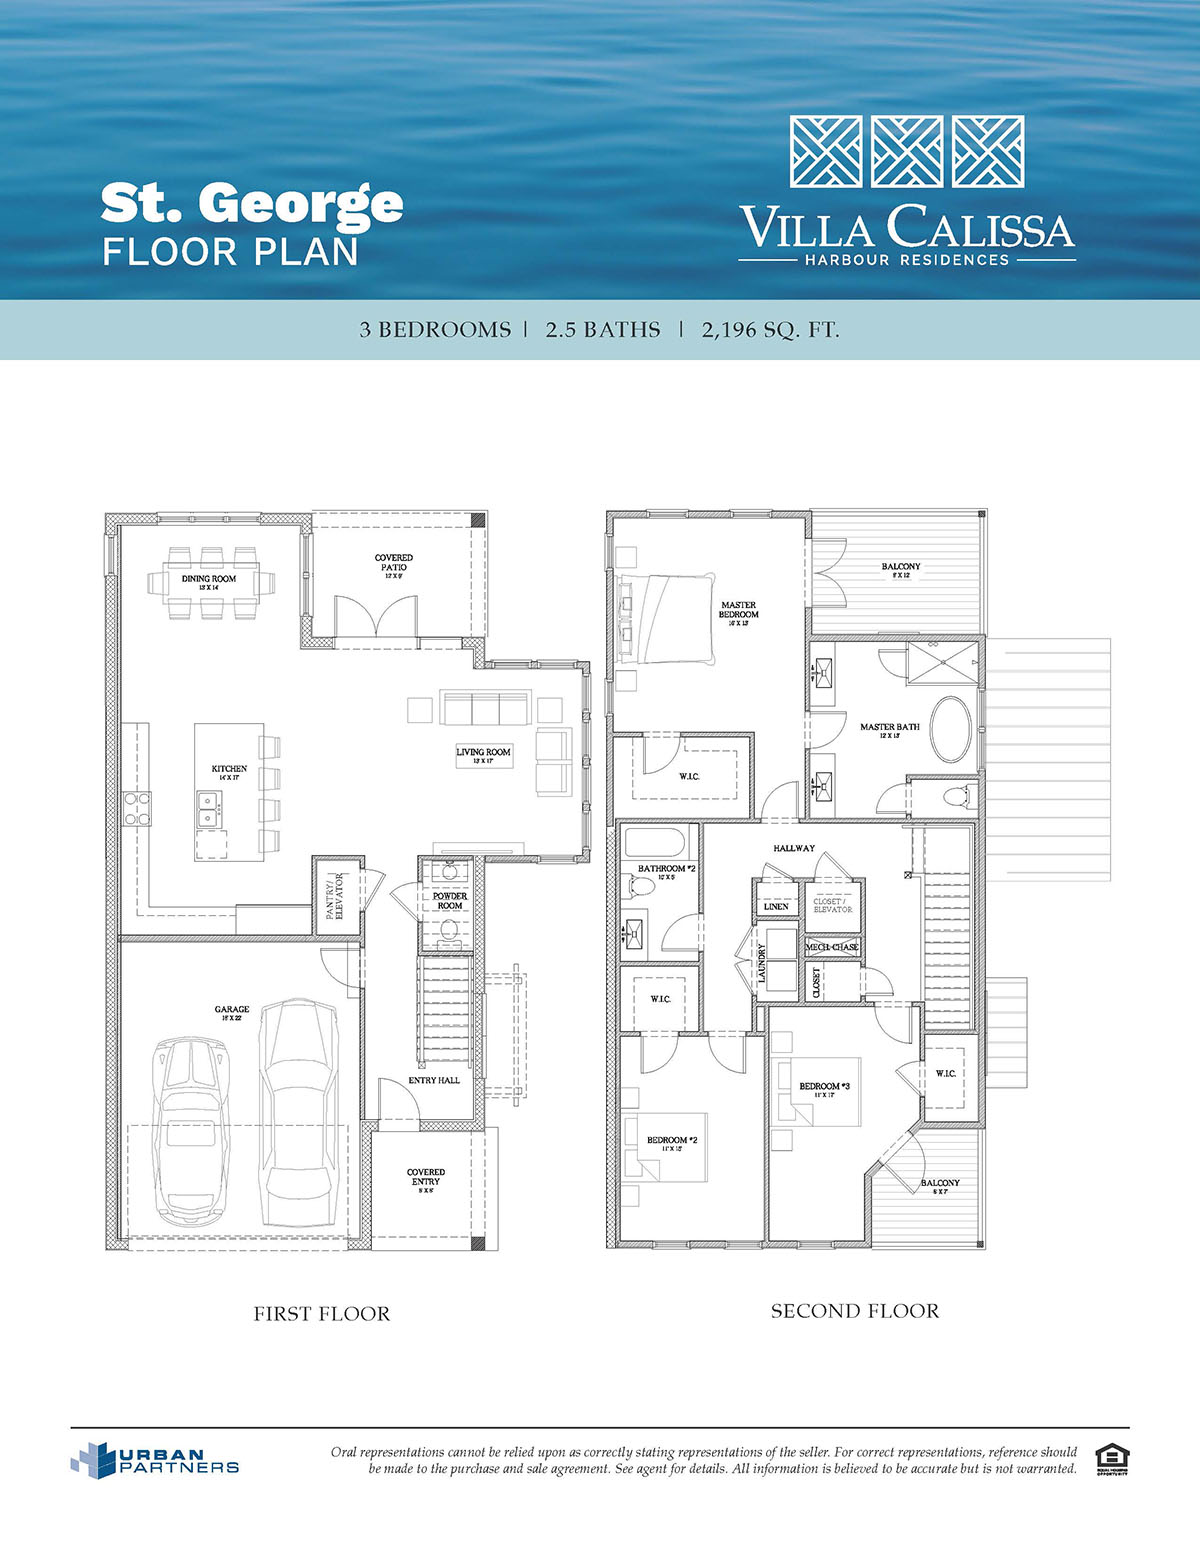 St. George floor plan at Villa Calissa